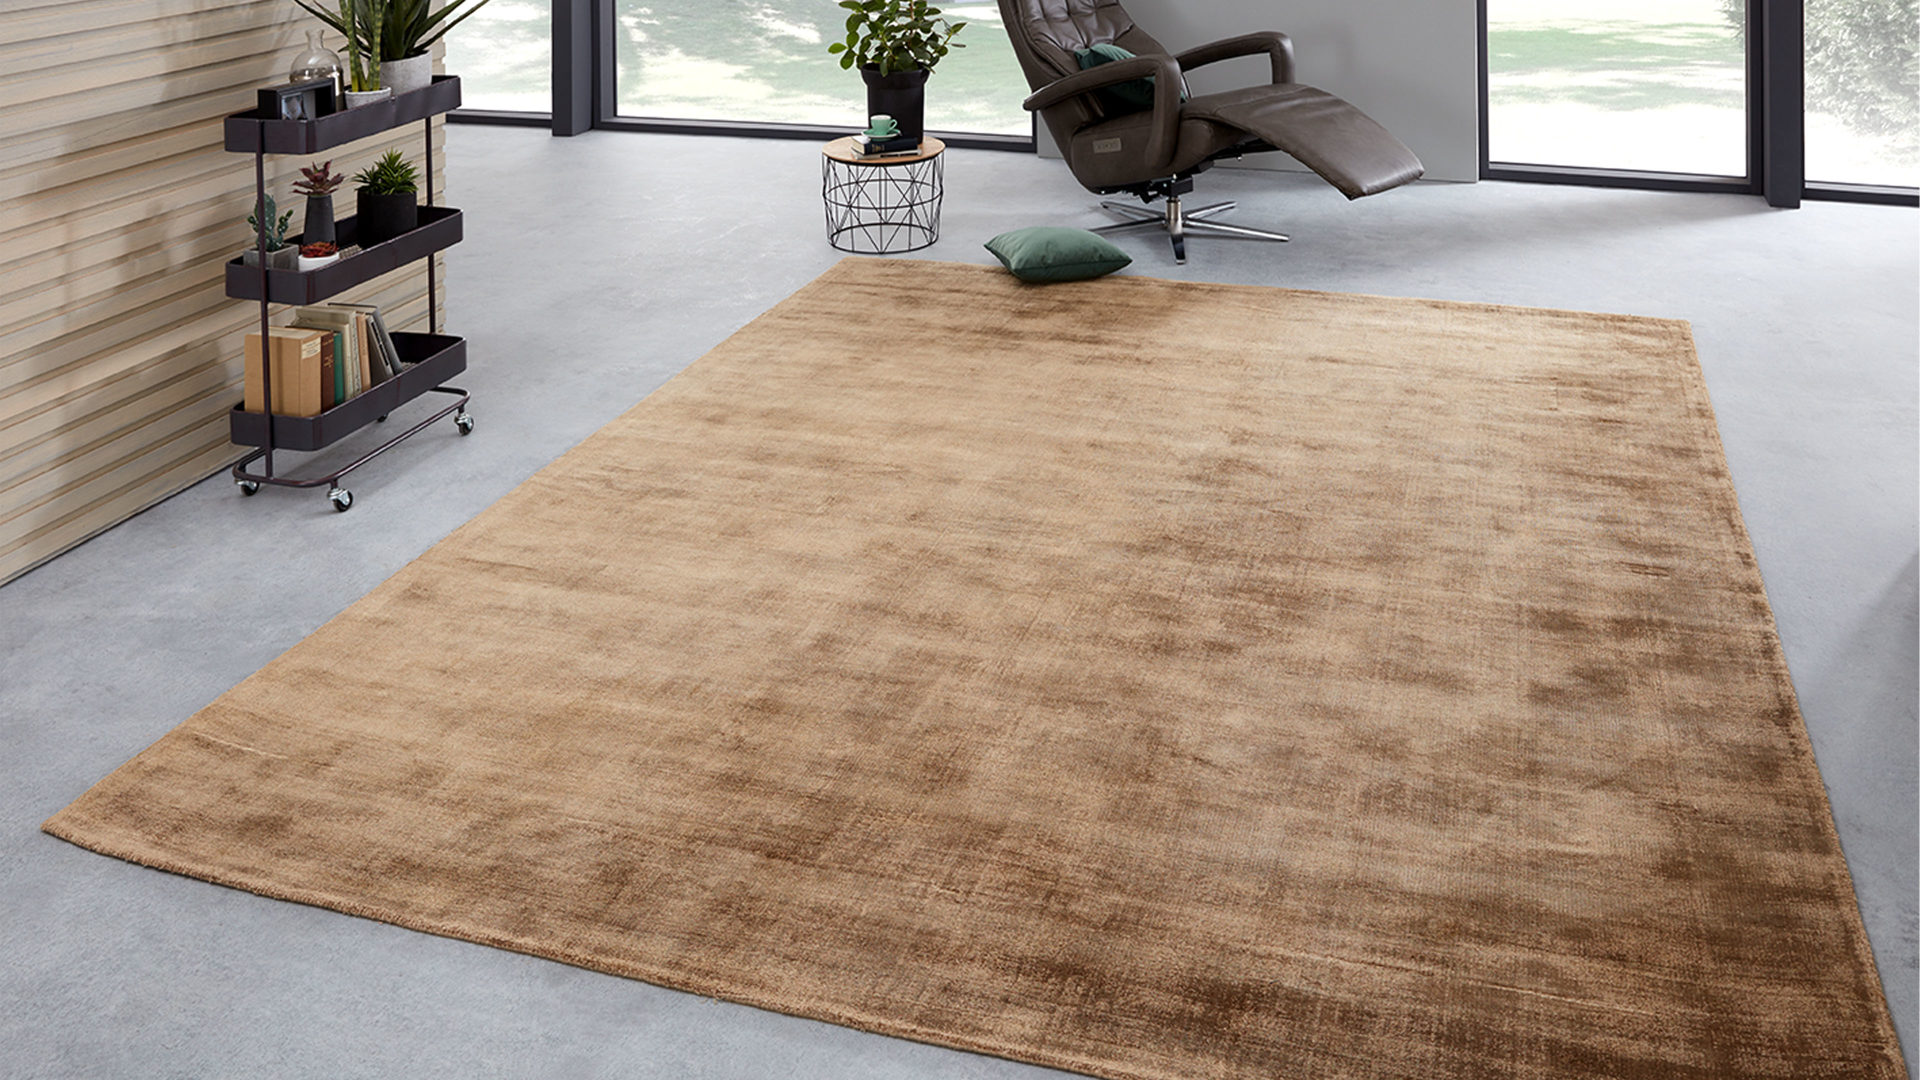 Handwebteppich Interliving aus Textil in Braun Interliving Teppich Serie A-8040 Camelfarben – ca. 170 x 240 cm